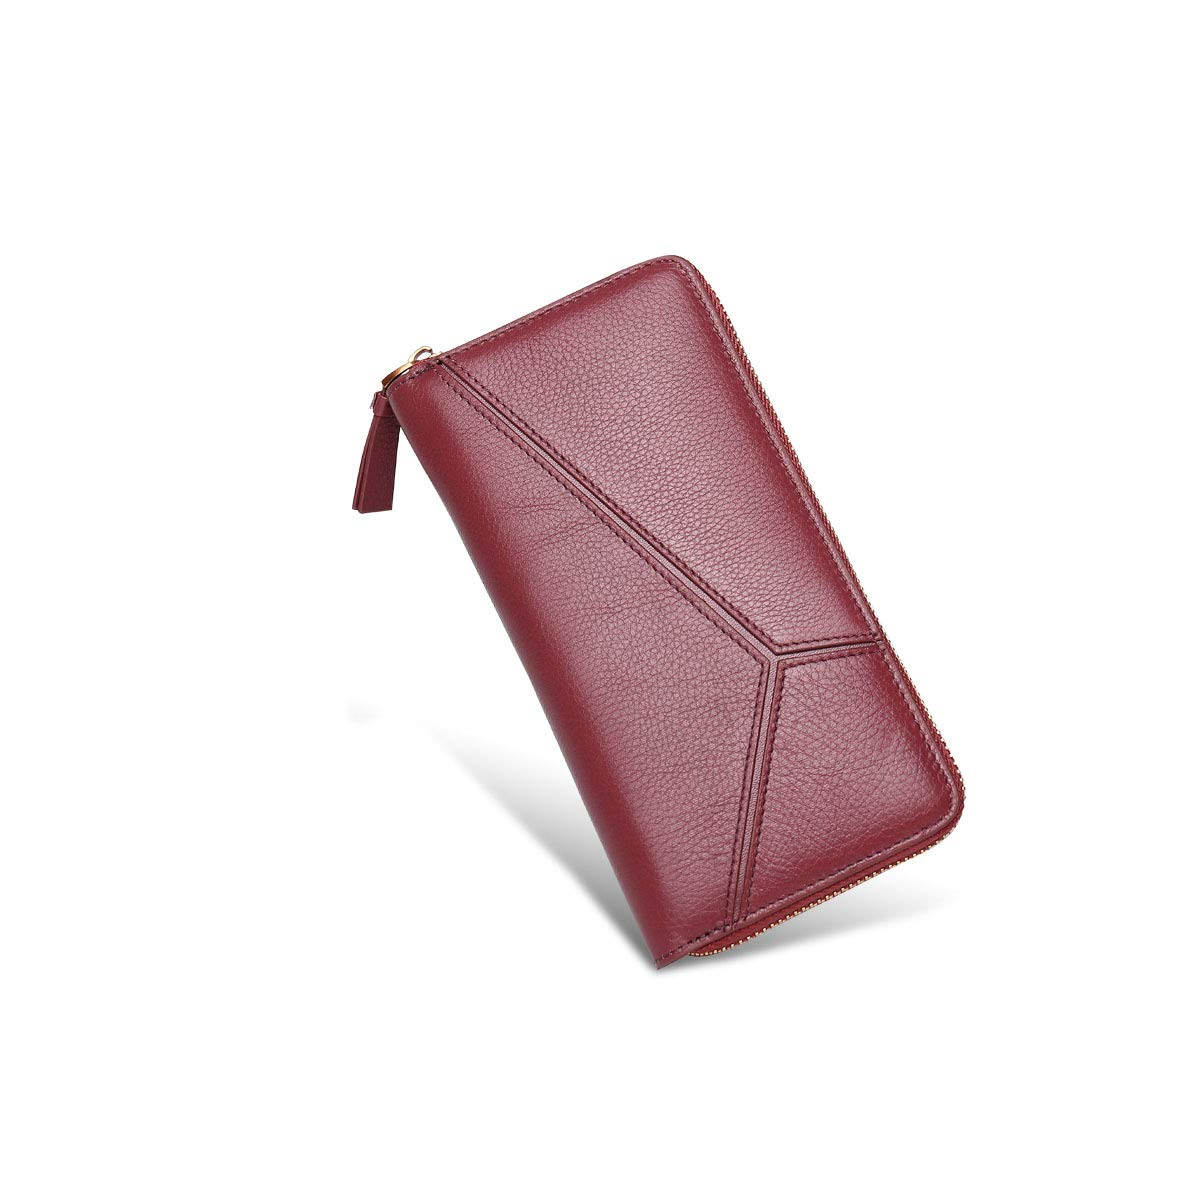 Red Leather Zipper Wallet, Clutch, Big Travel Wallet Handbag, Ladies Boxed Gift, Card Package